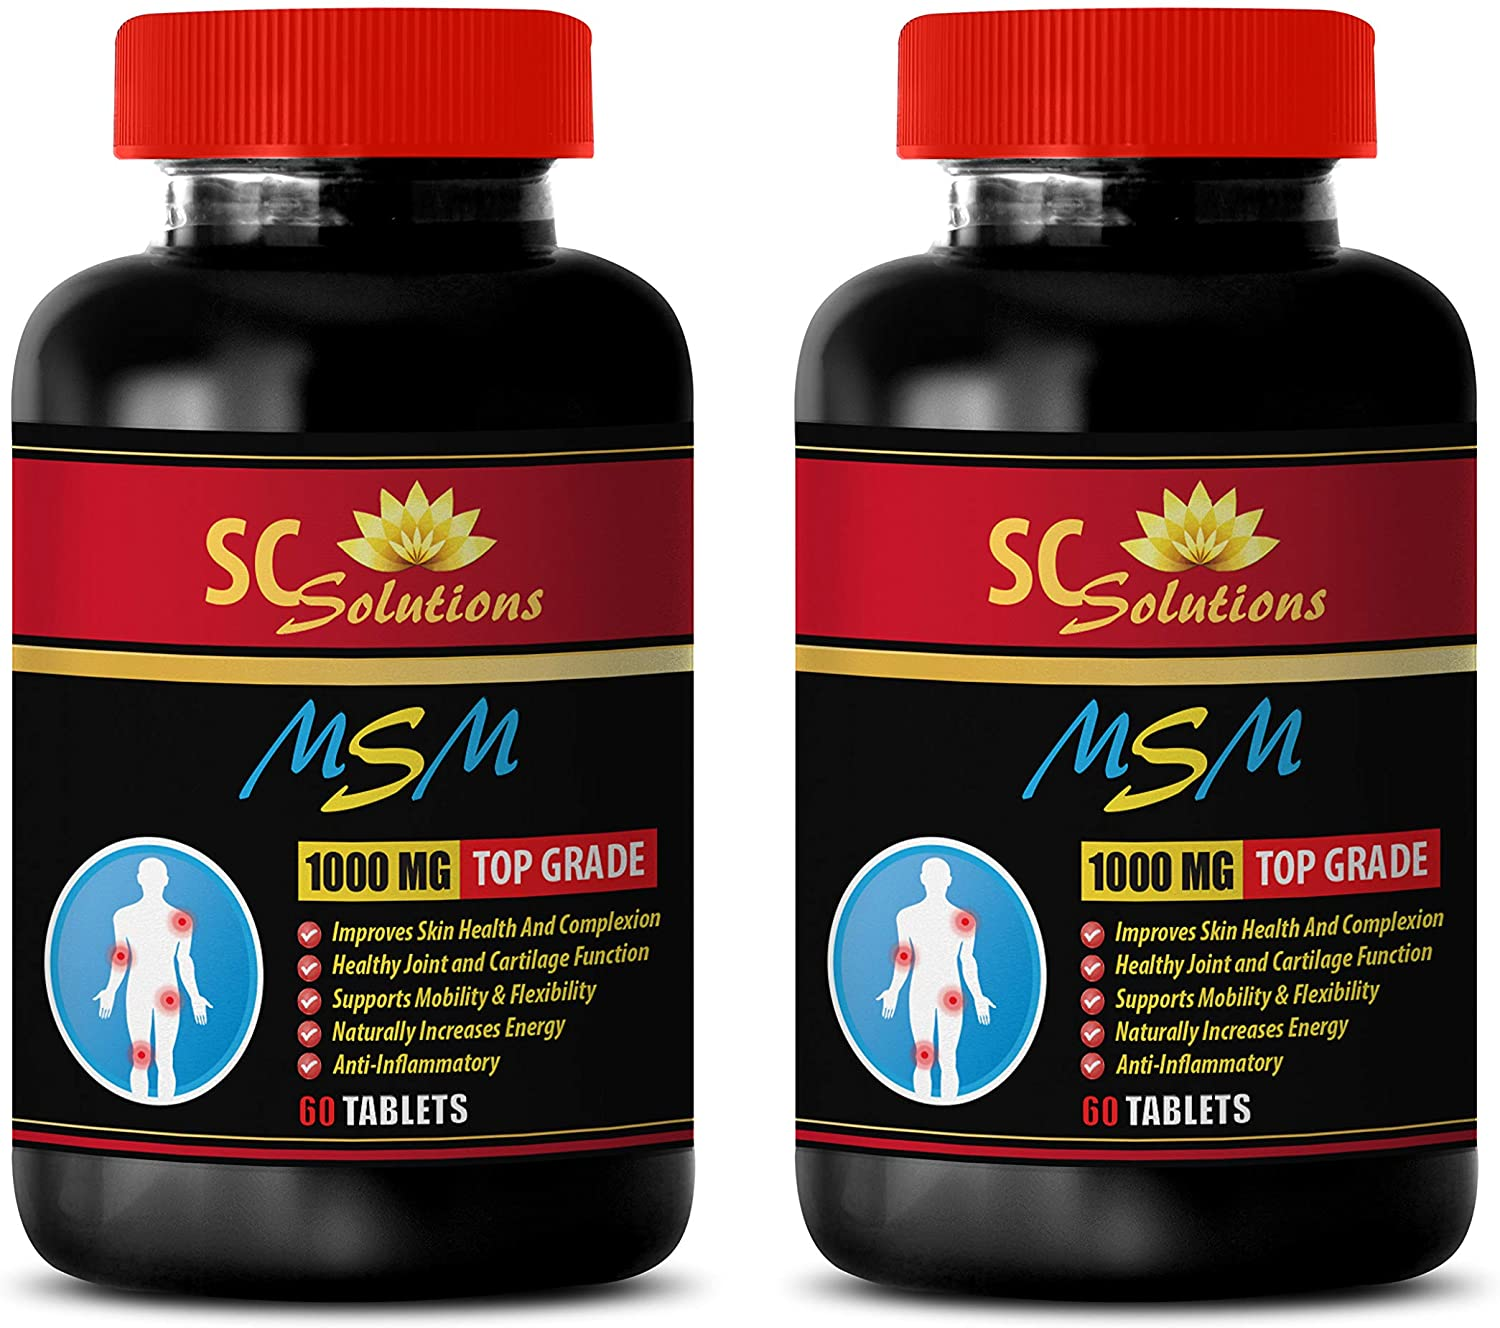 Natural Energy Support - MSM (Methylsulfonylmethane) - Hair msm - 2 Bottles 120 Tablets